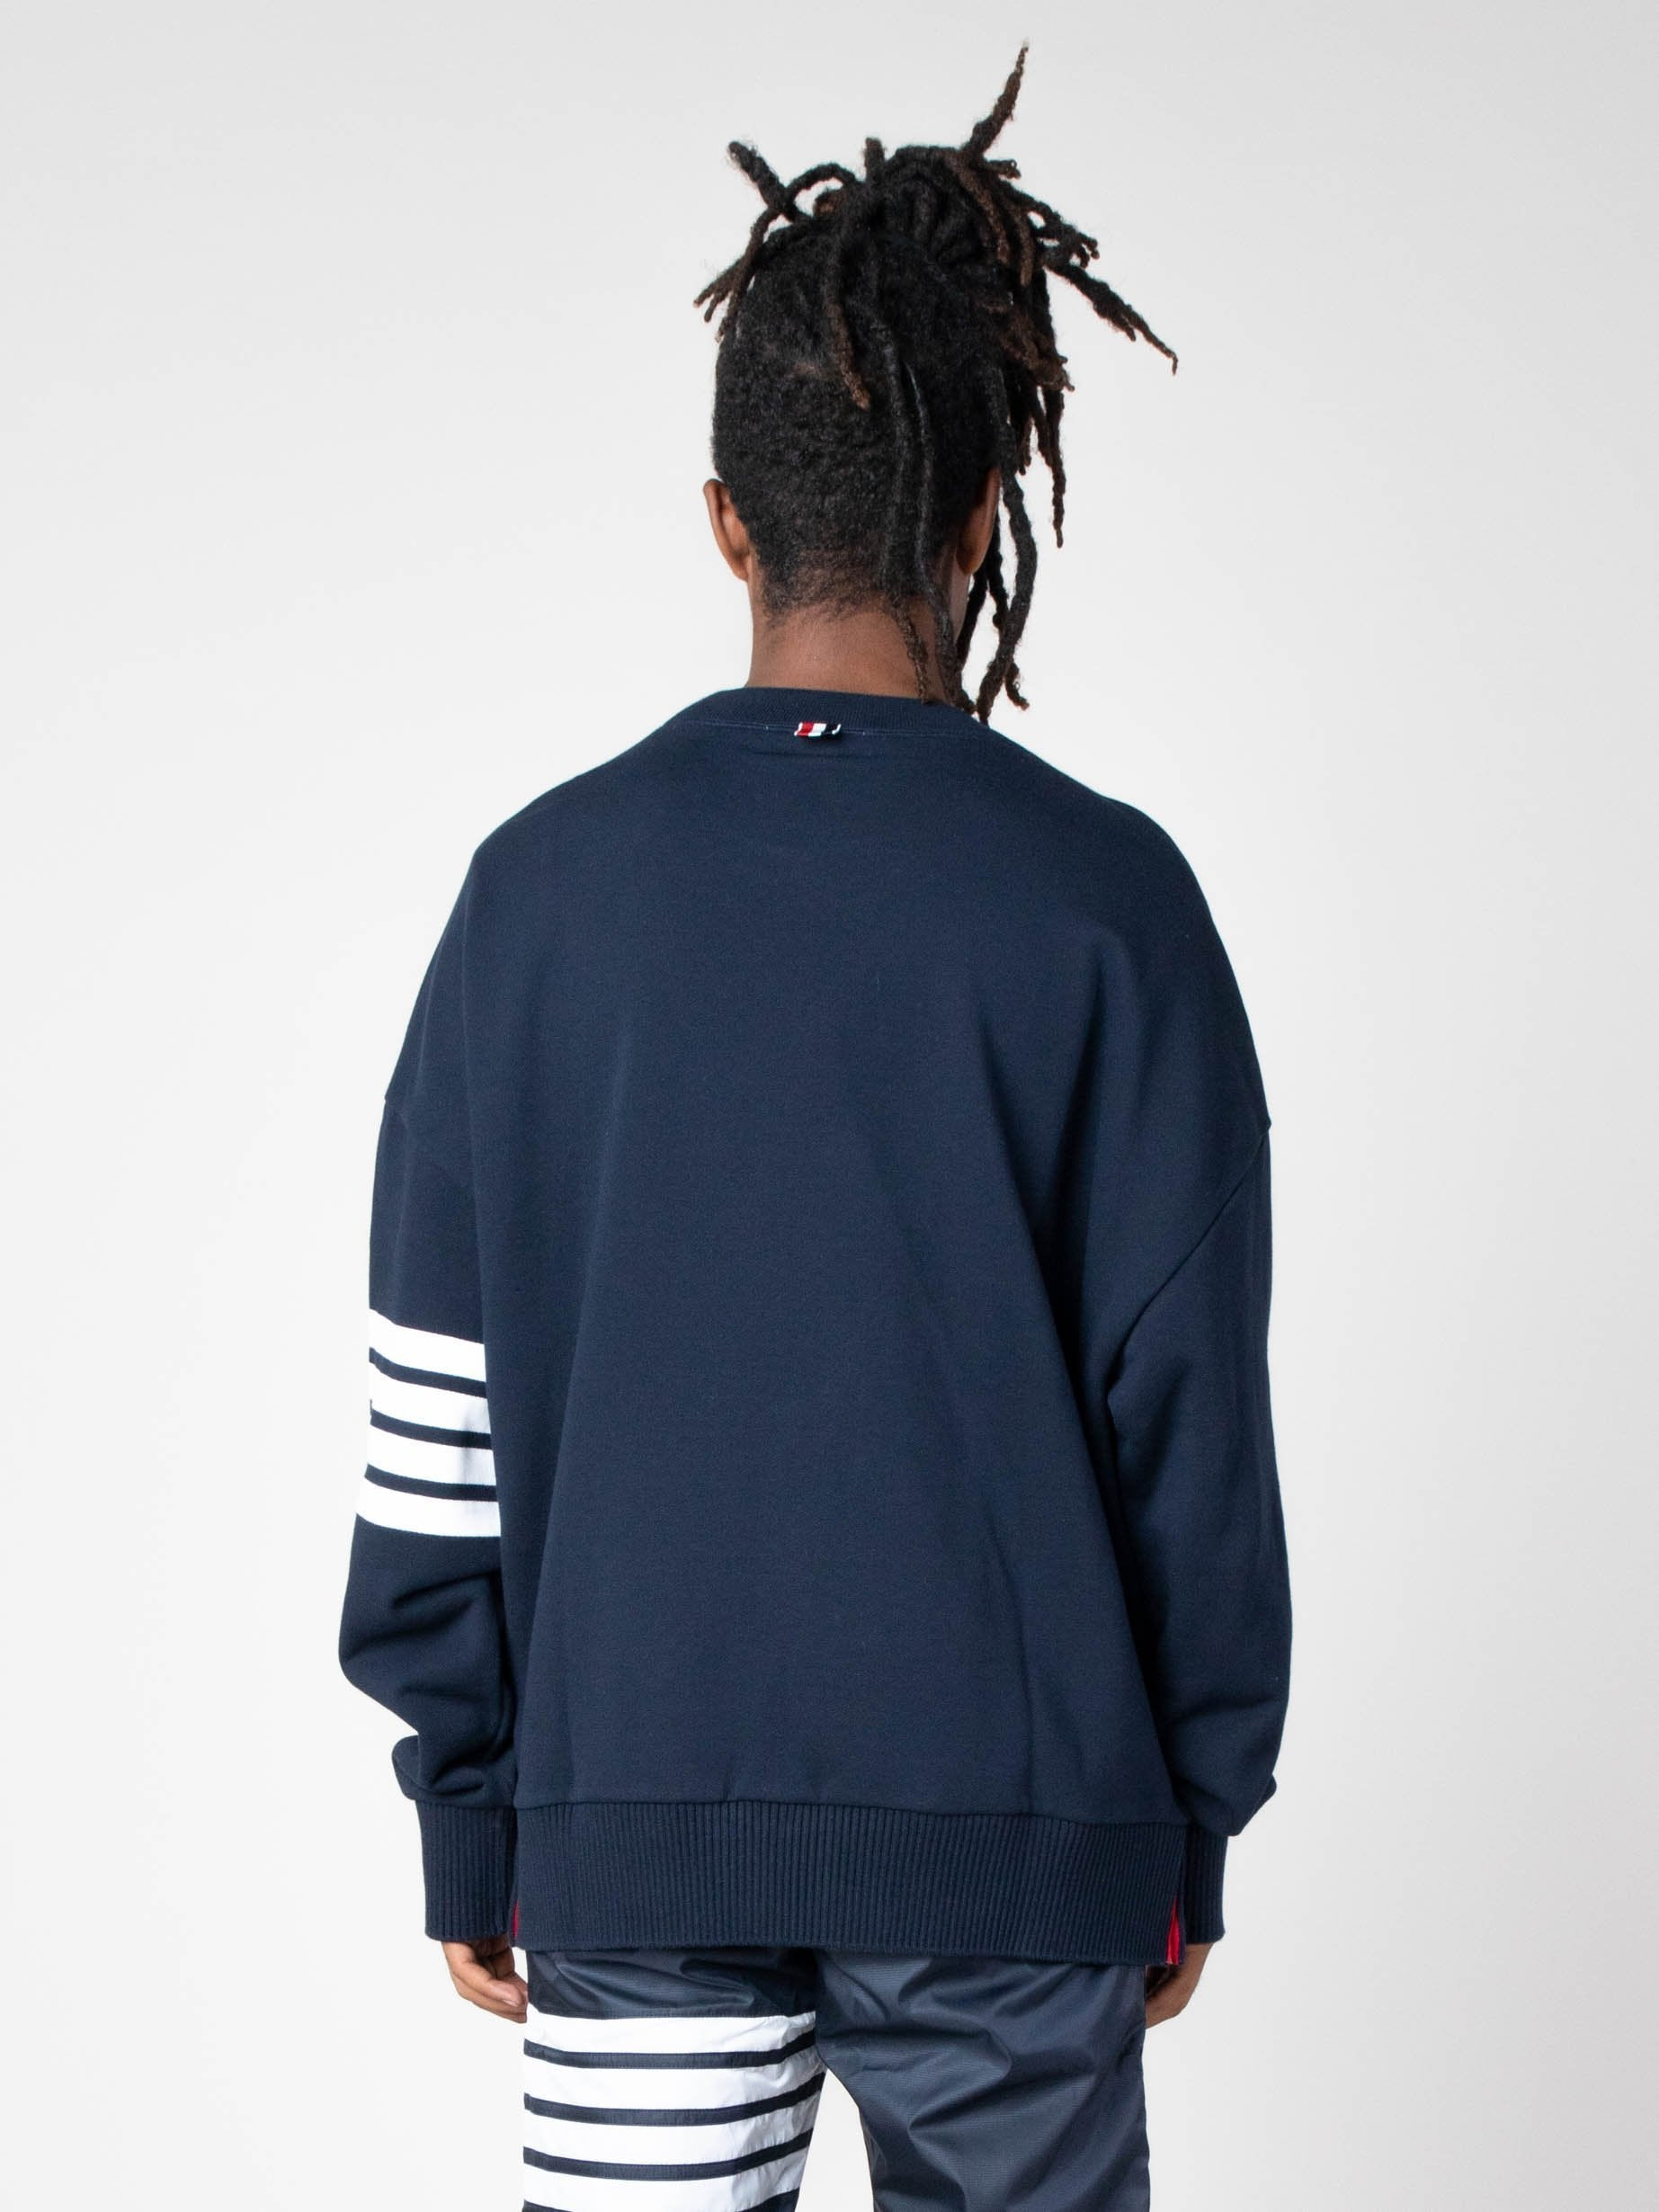 Navy Oversized Classic Crew Neck Sweatshirt In Classic Loop Back W/ Engineered 4 Bar 6